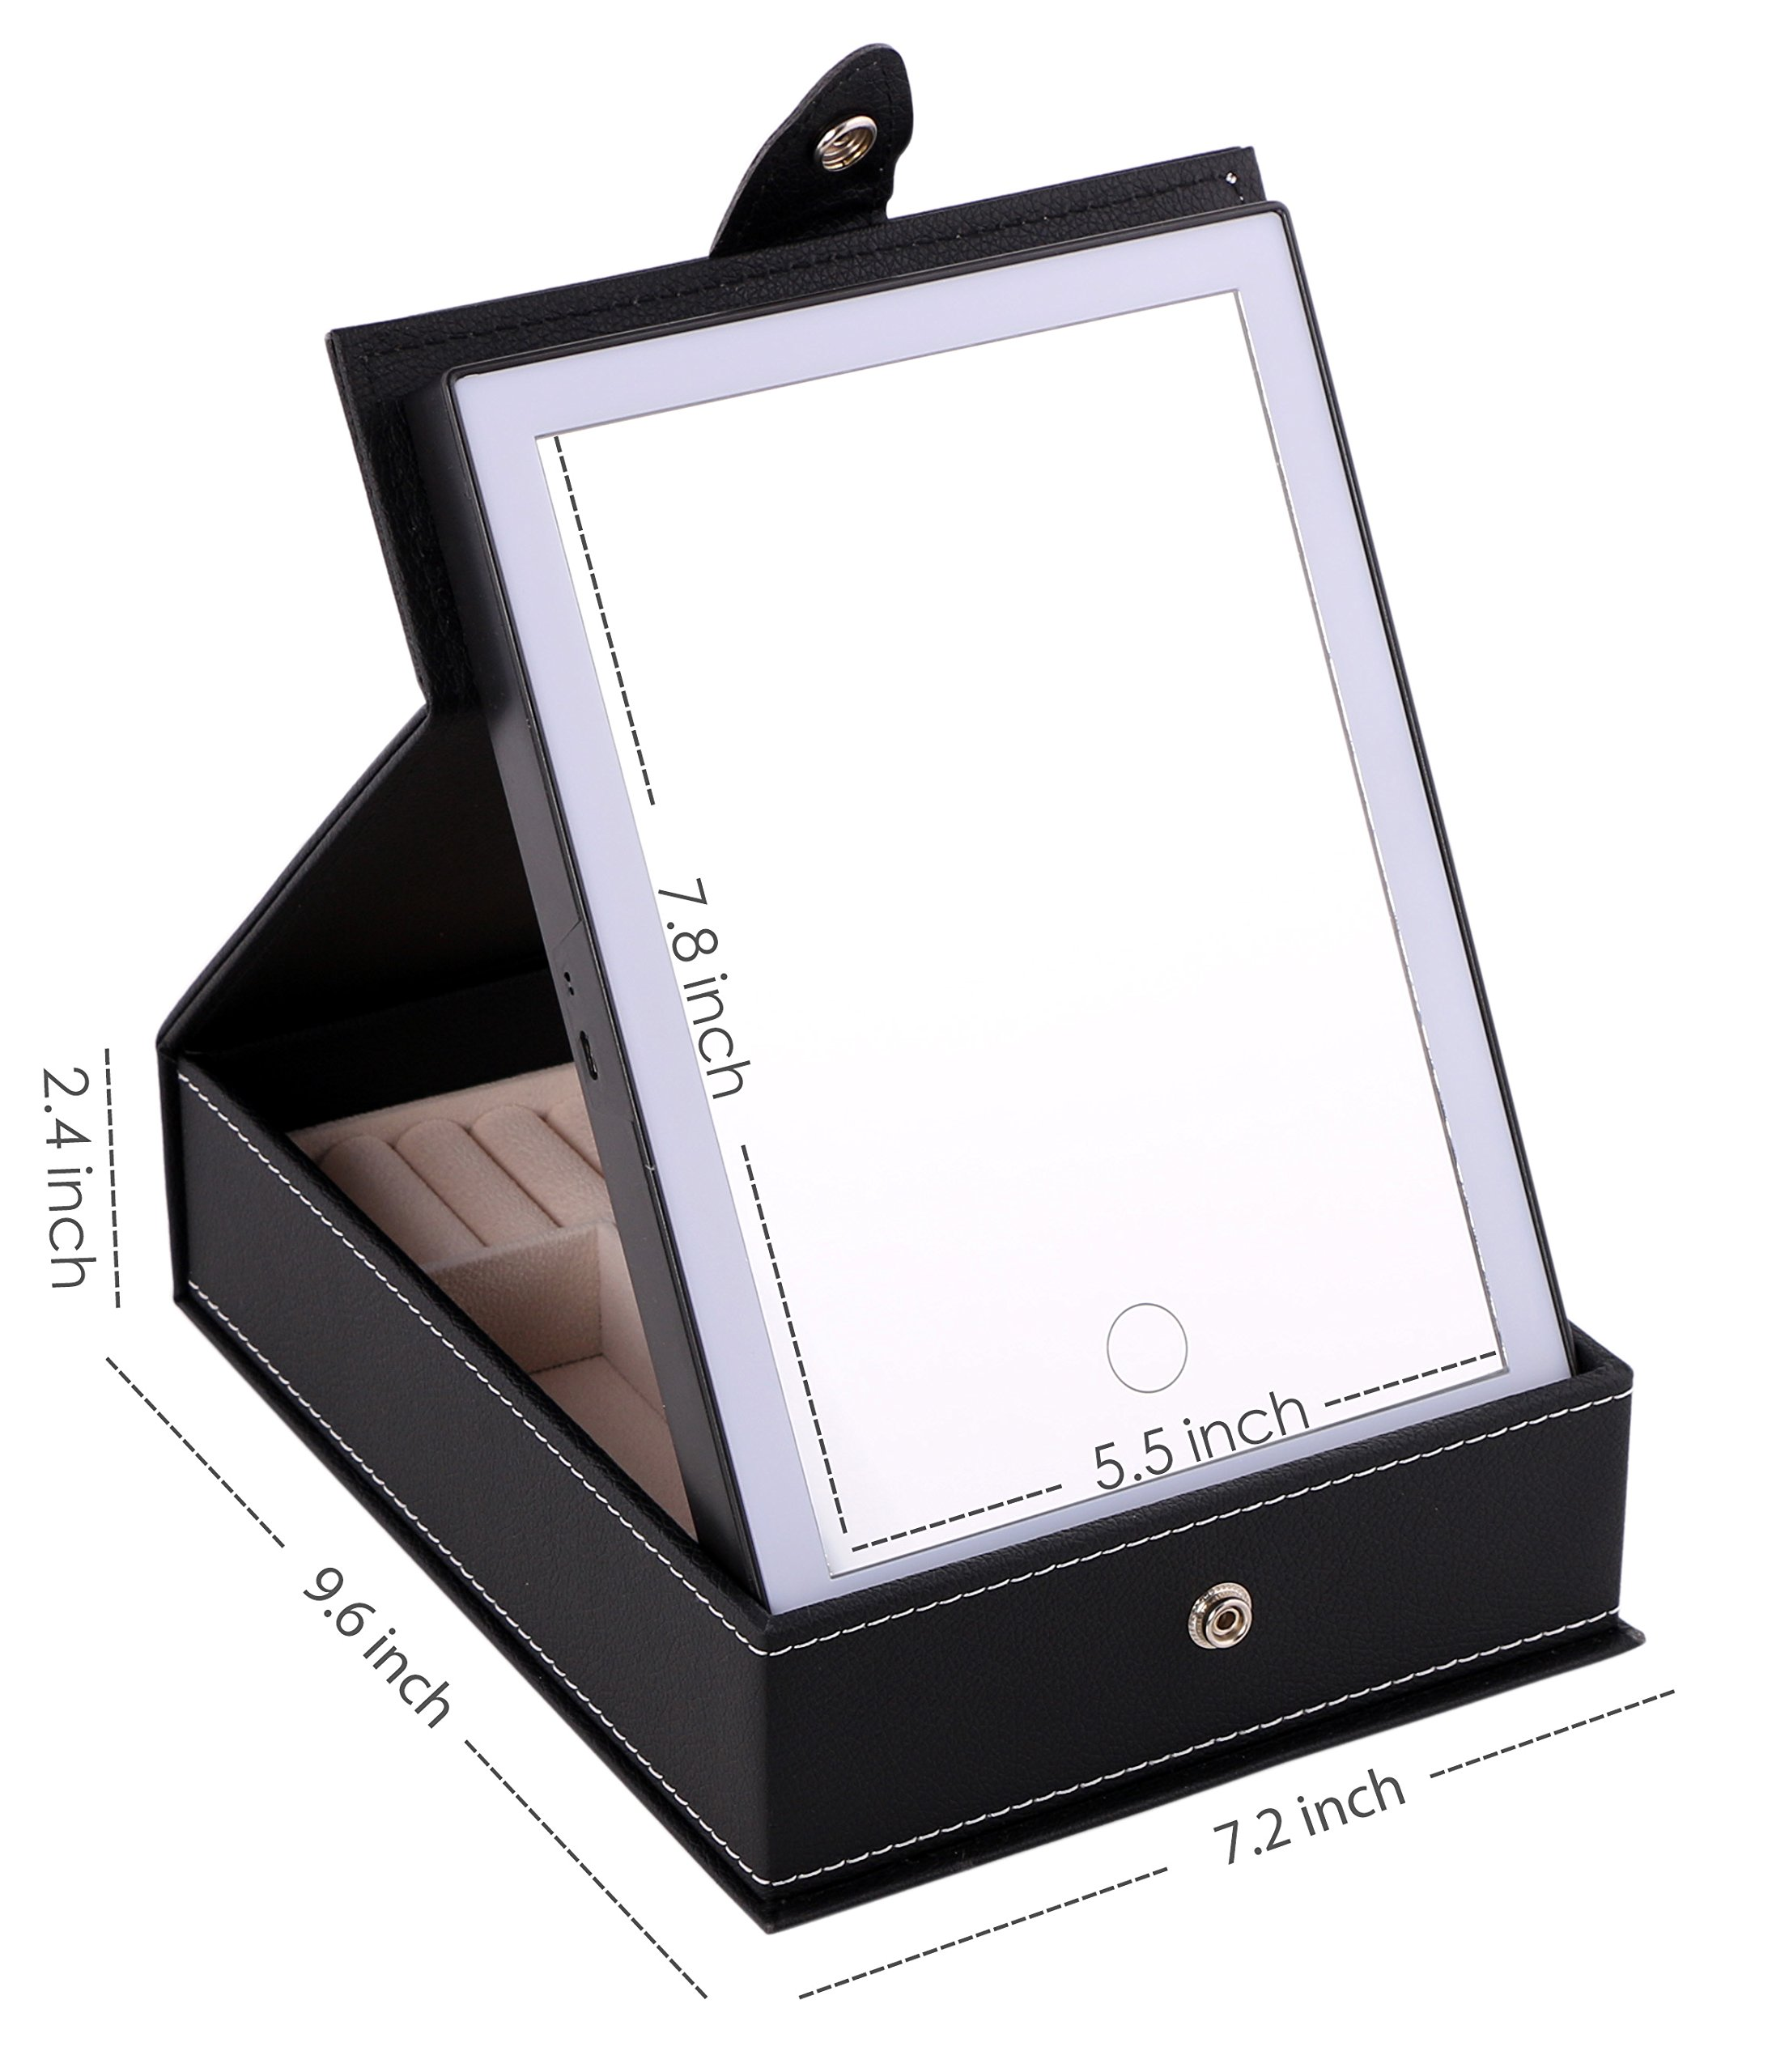 Omeet LED Lighted Makeup Mirror with Storage Box for Cosmetics and Jewelry Storage - USB and Battery Operated by Omeet (Image #4)